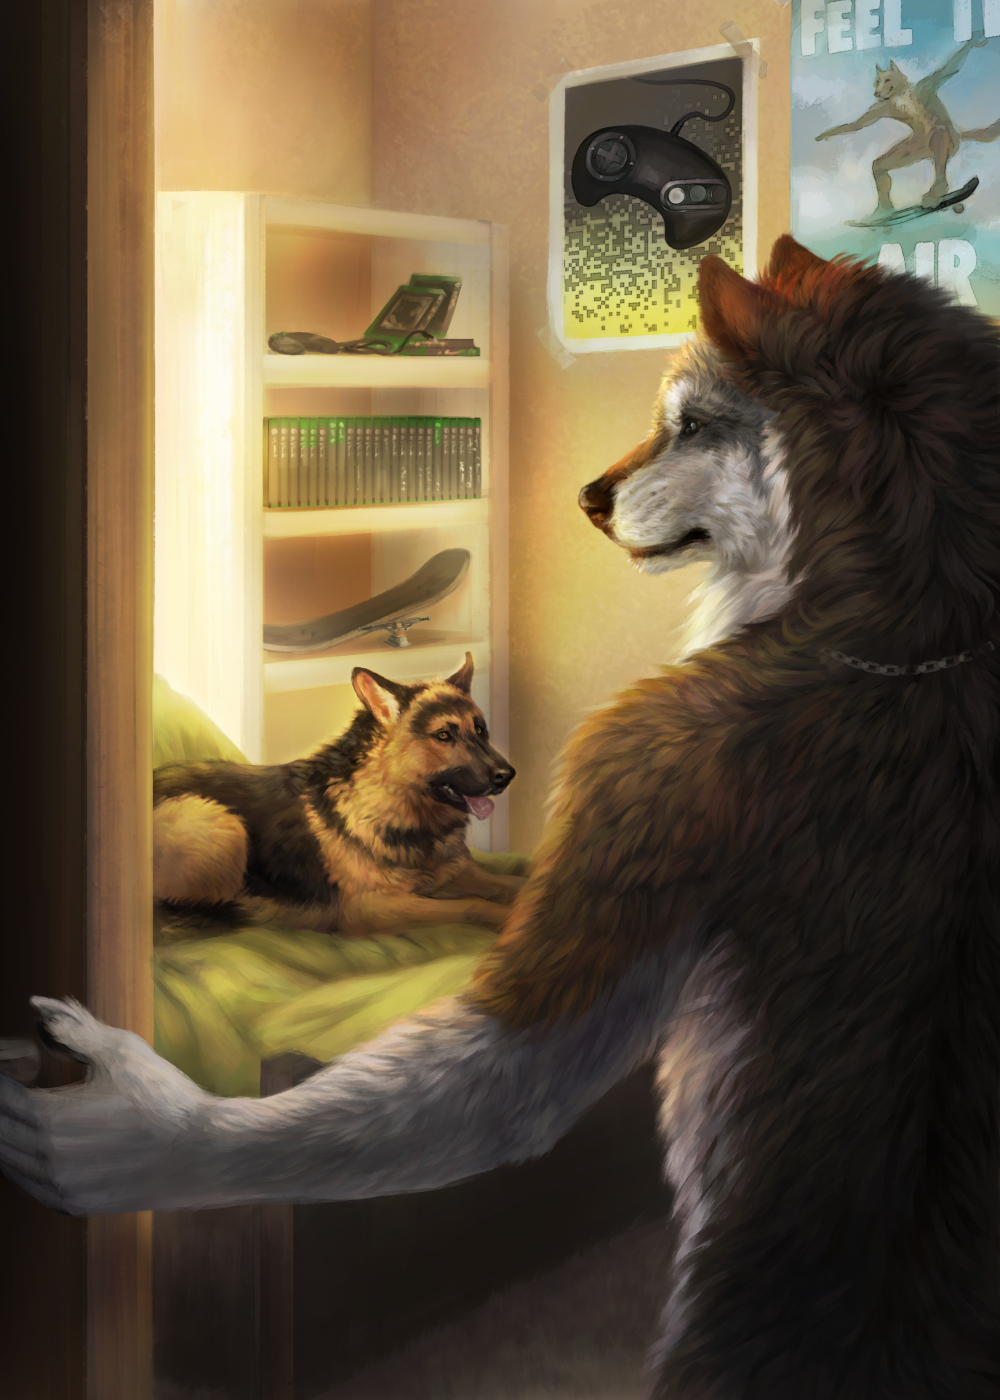 Werewolf Tale II Back Cover by Wolnir                              As the story progresses, Alex's German Shepherd, though distrustful of Alex when shifted, comes to be more accepting of his new form.